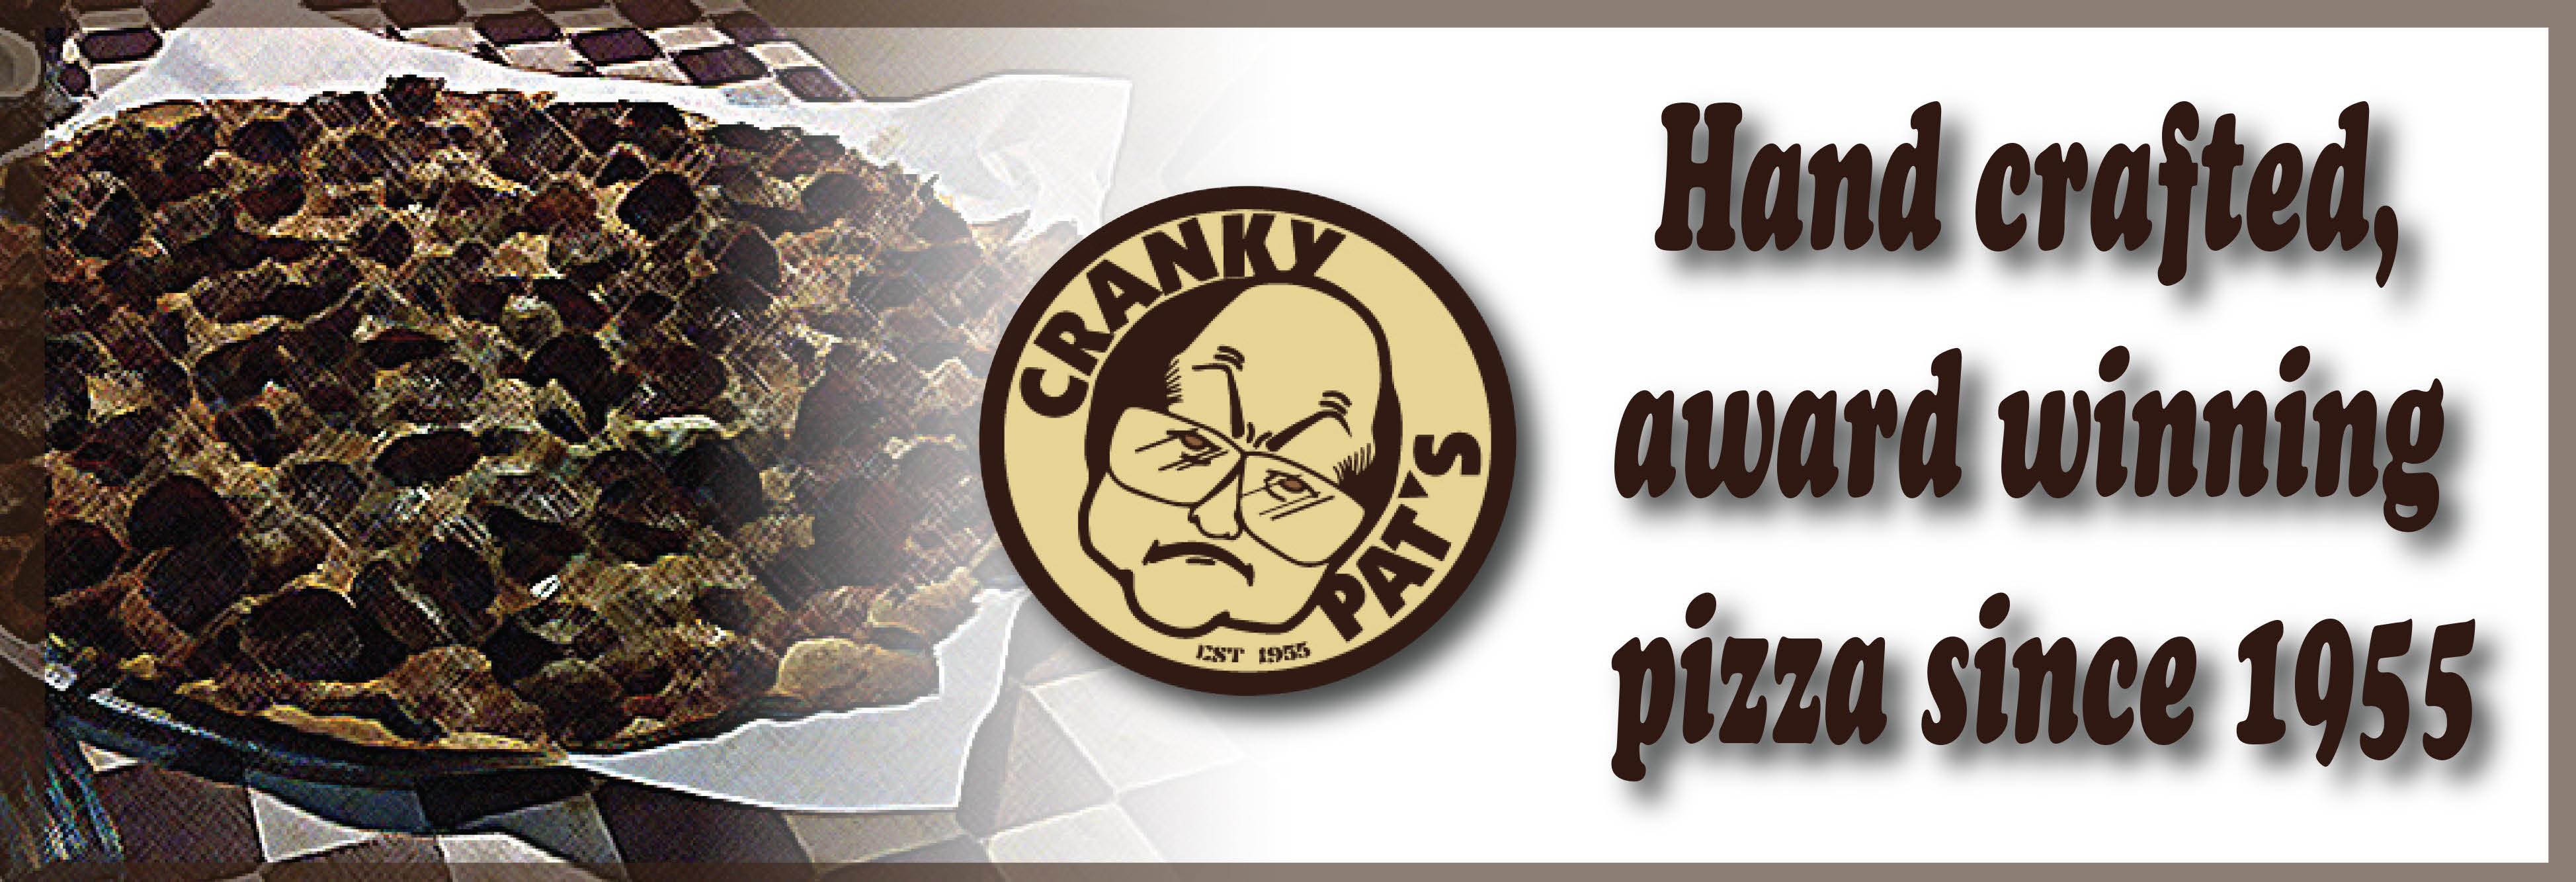 Pizza, Buffet, Specials, Pasta, Sandwiches, Craft Beers